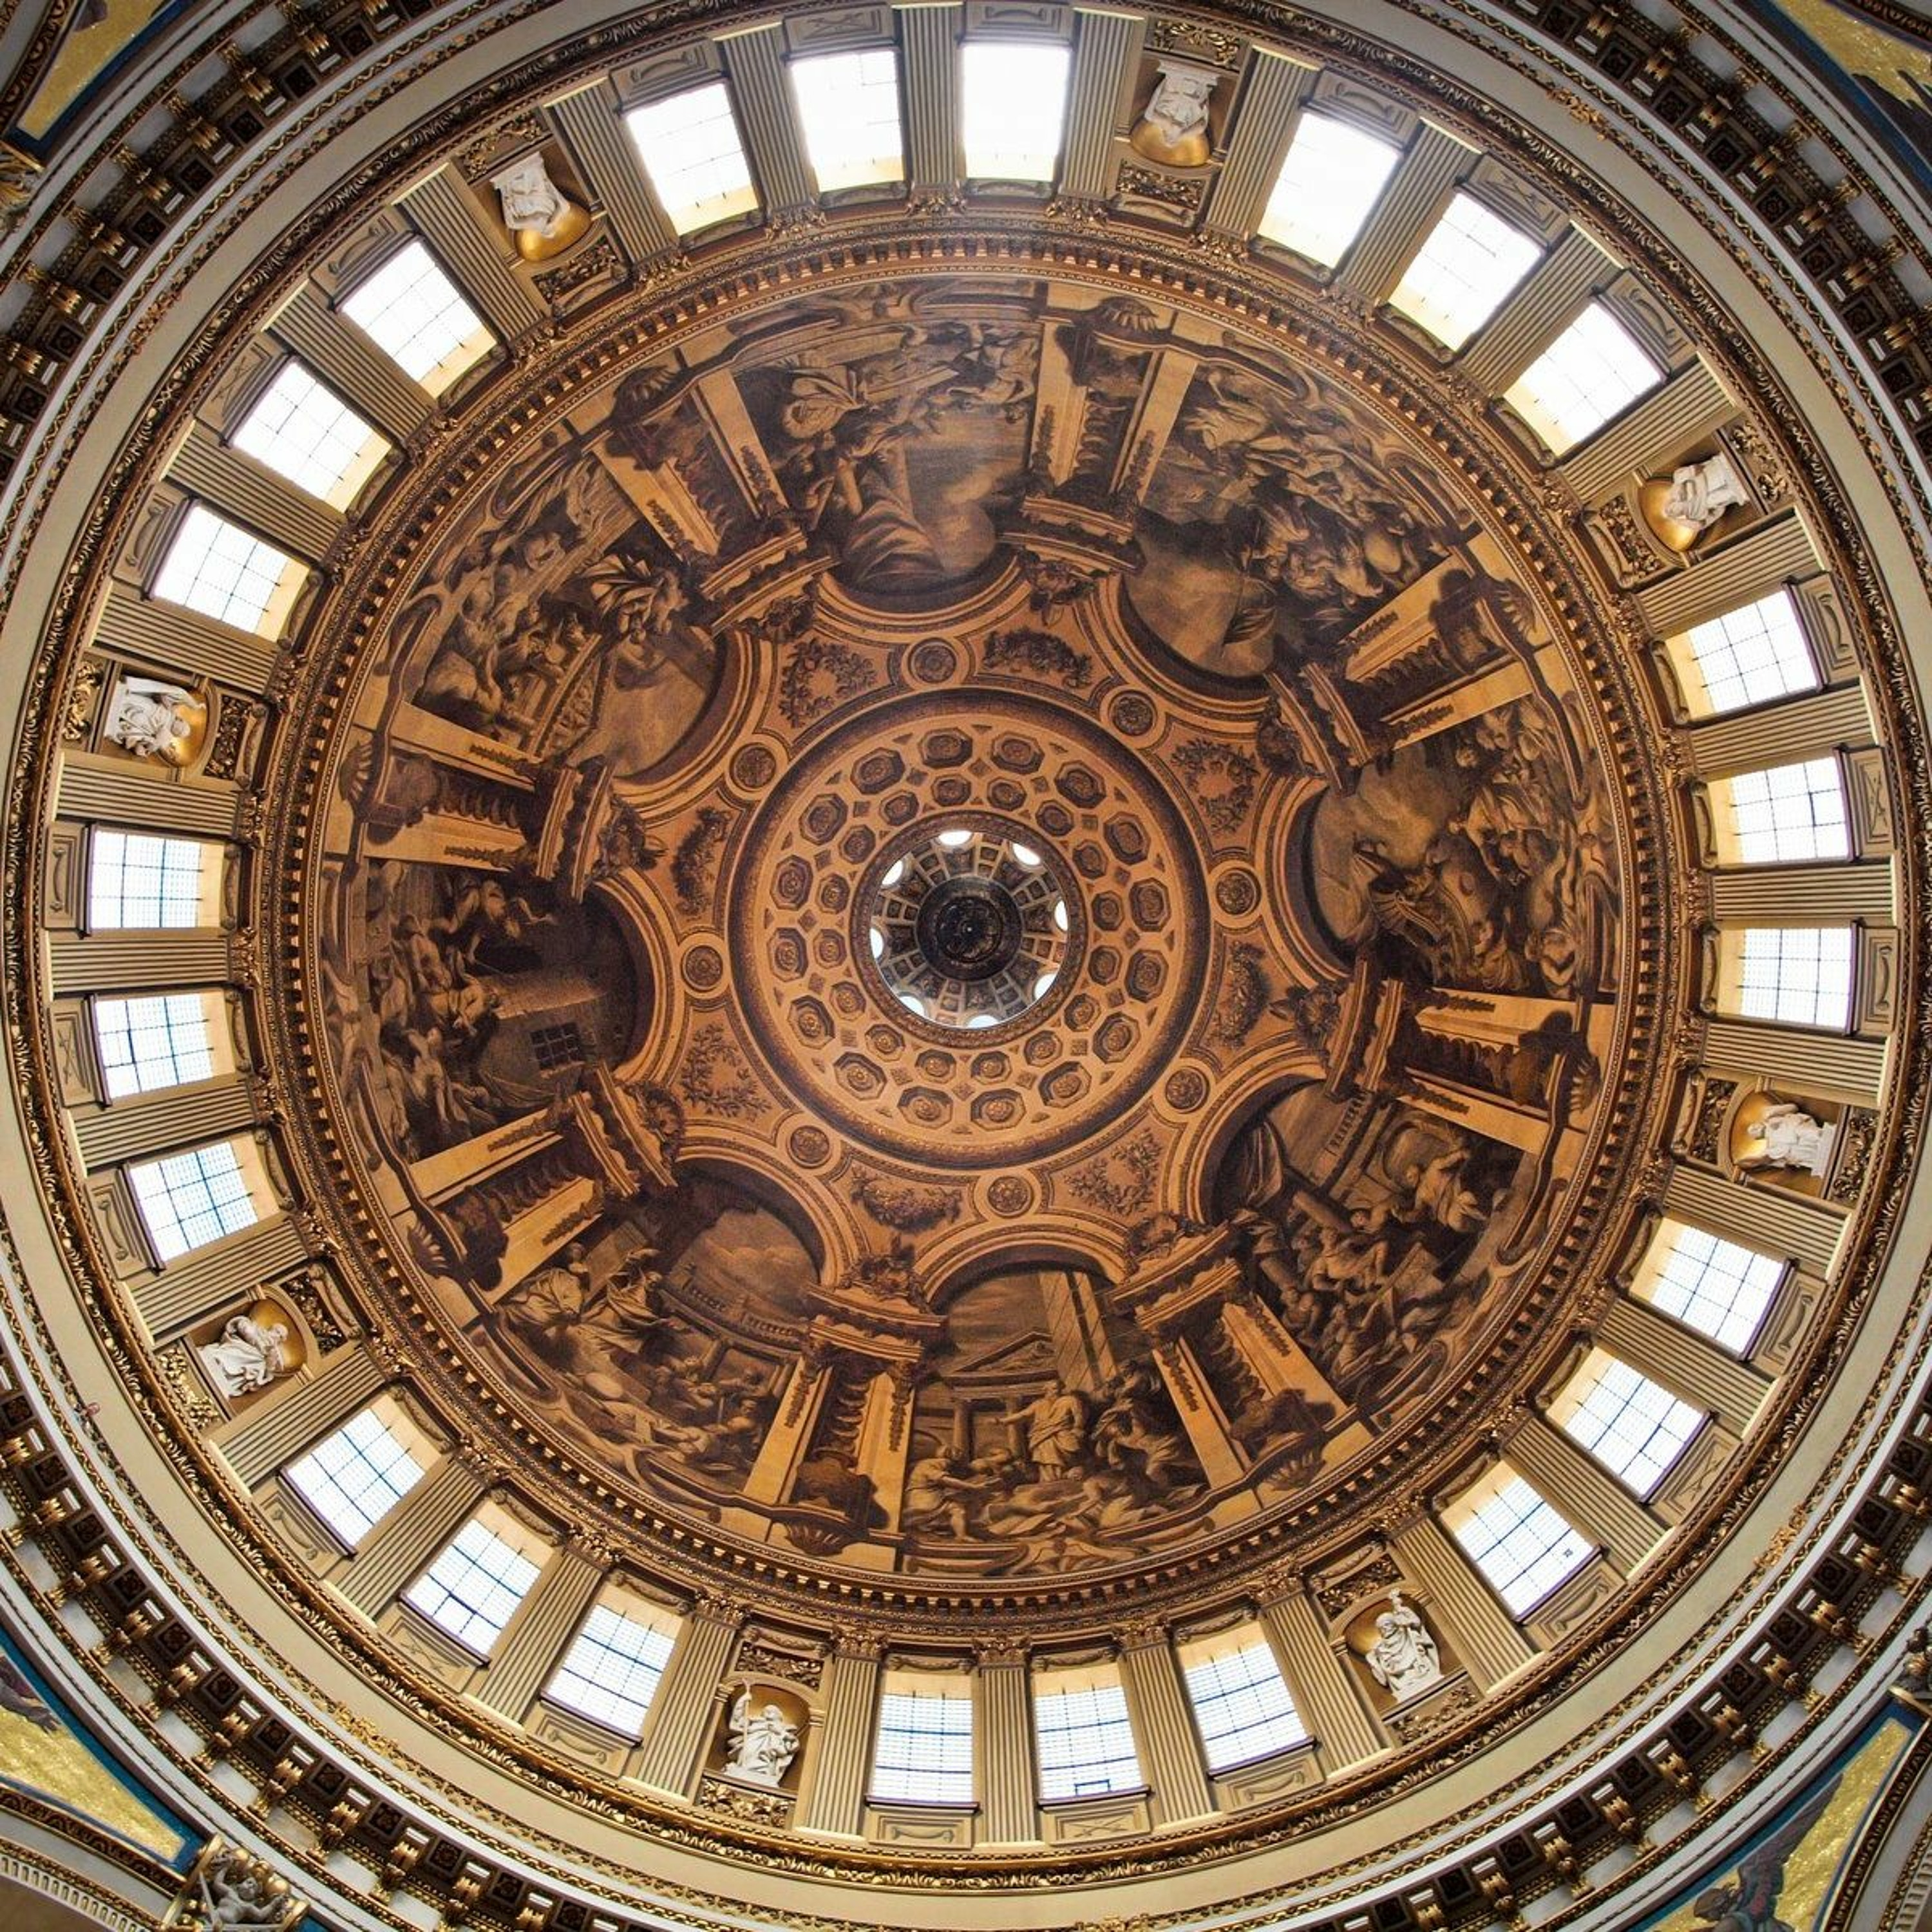 Stories from St Pauls: The Art of St Paul's